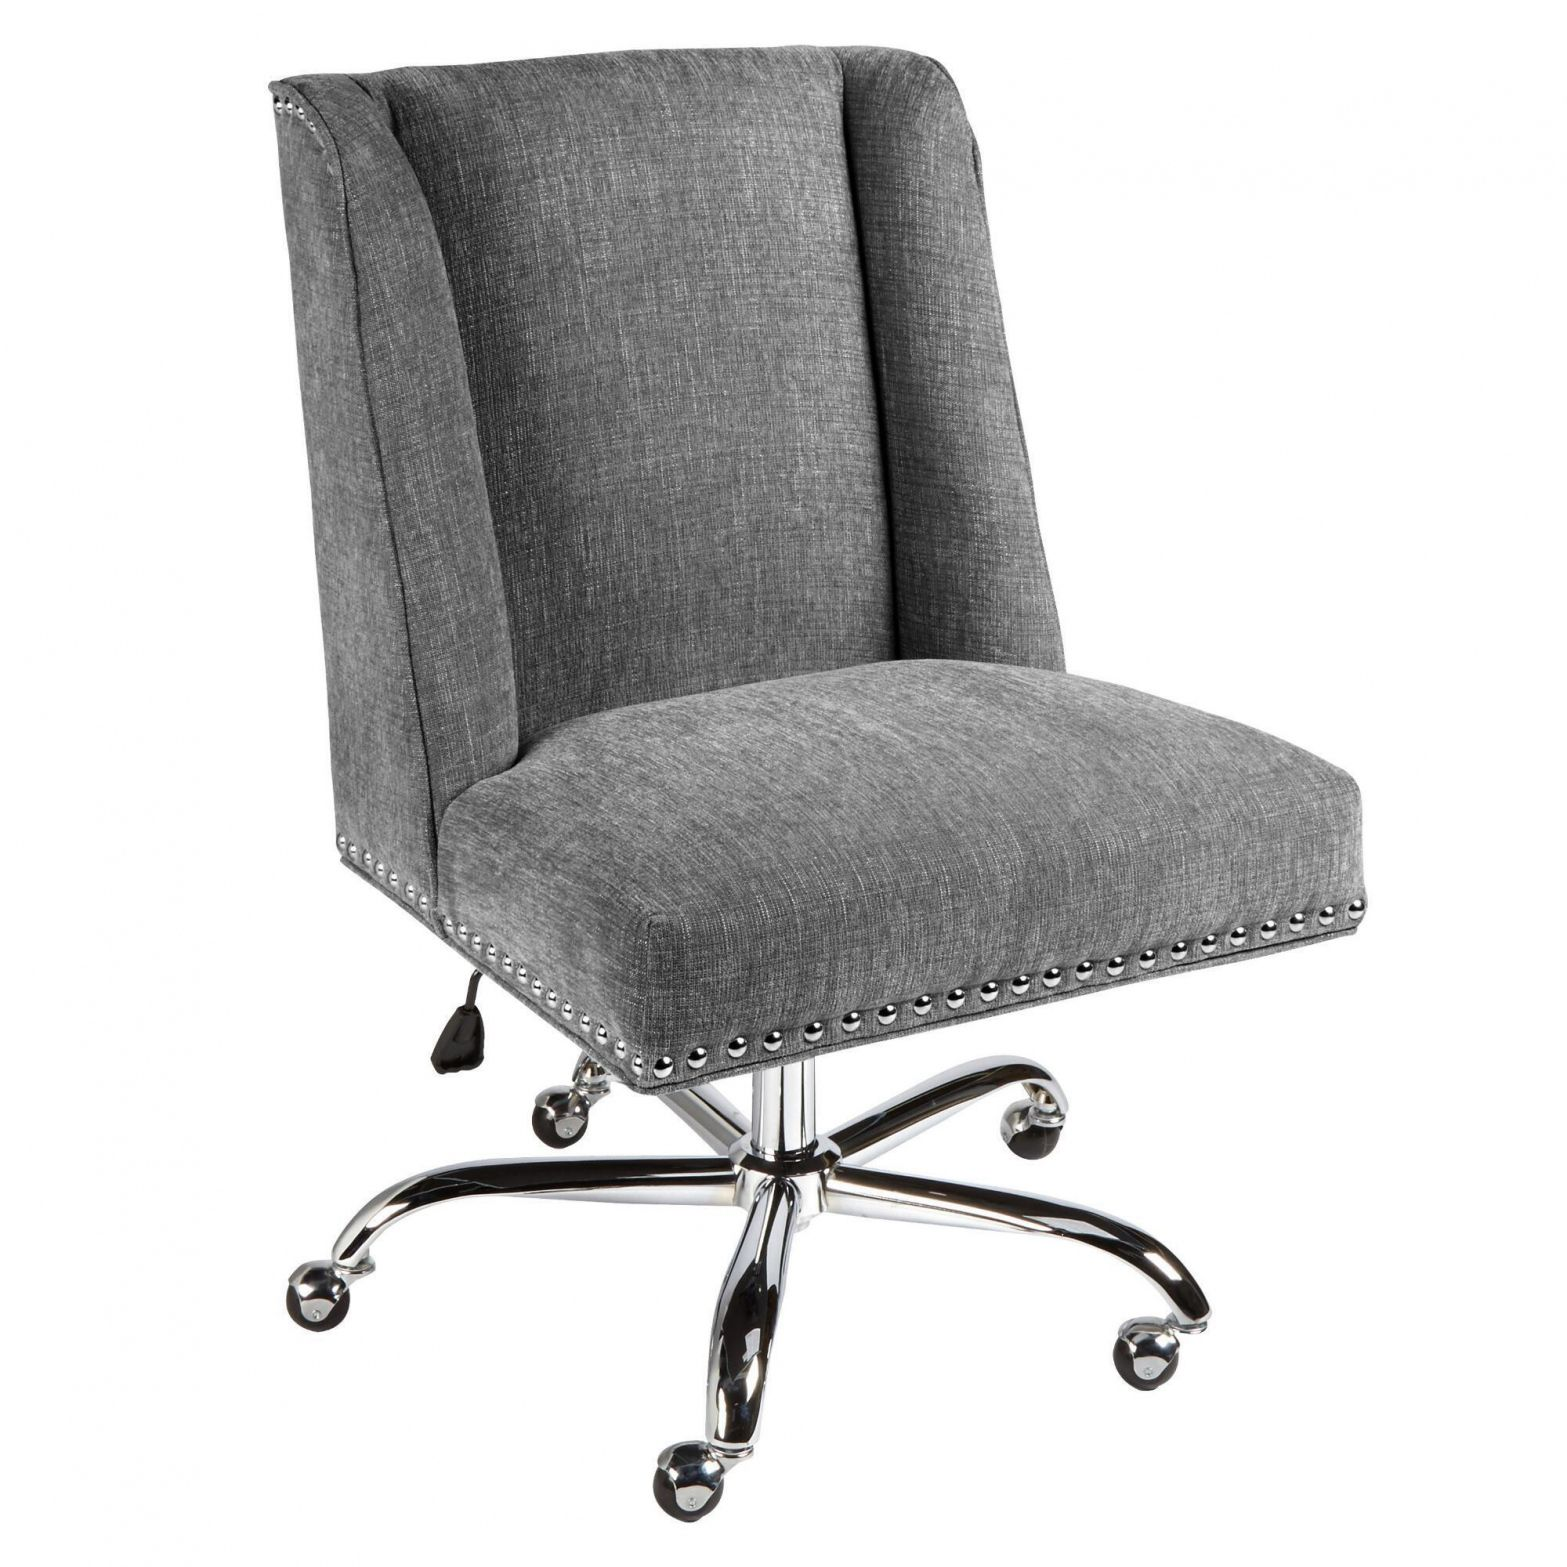 Groovy Pin By Prtha Lastnight On Room Ideas Low Budget Rolling Pabps2019 Chair Design Images Pabps2019Com